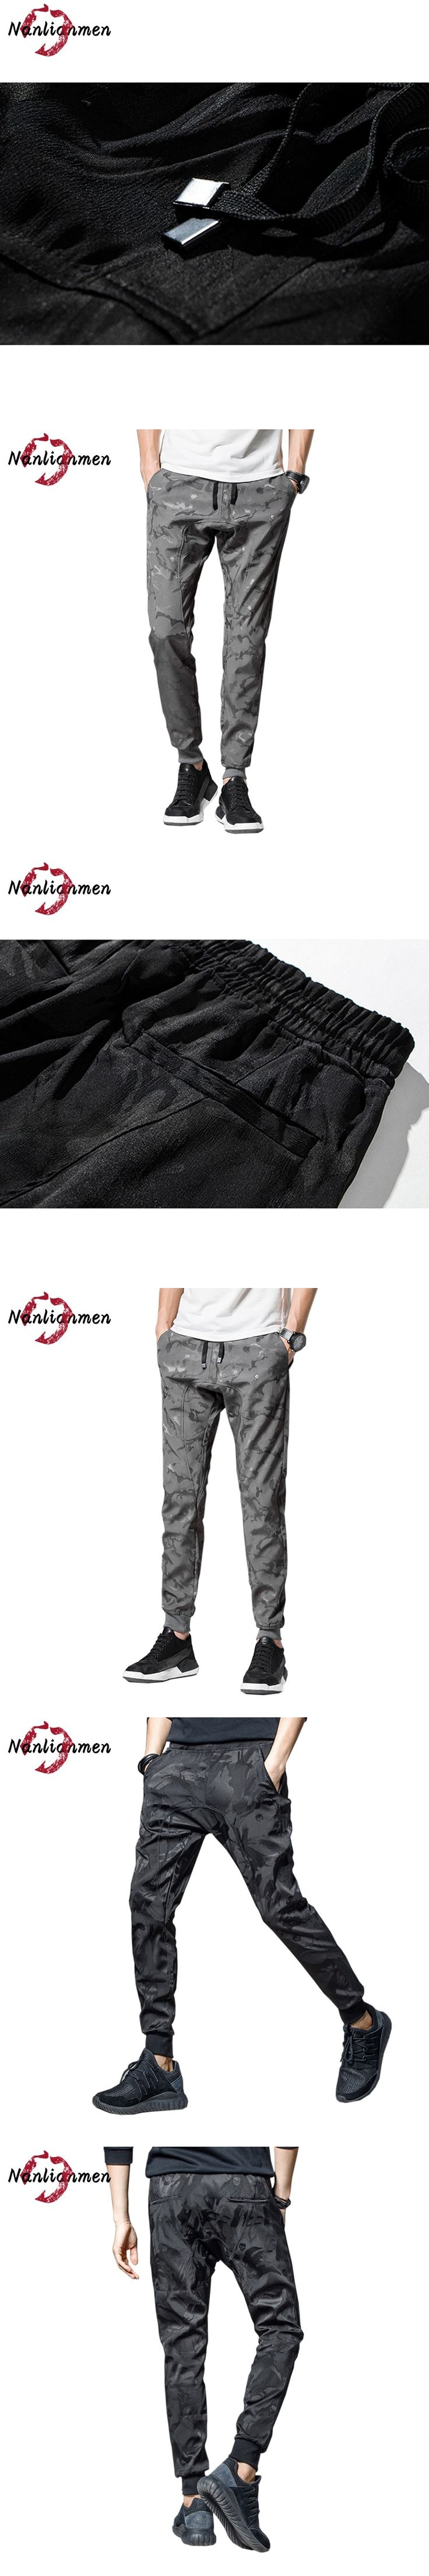 2017 Direct Selling Midweight New Camo Casual Pants Joggers Compression Men Dark Camouflage Pantalones Chandal Hombre